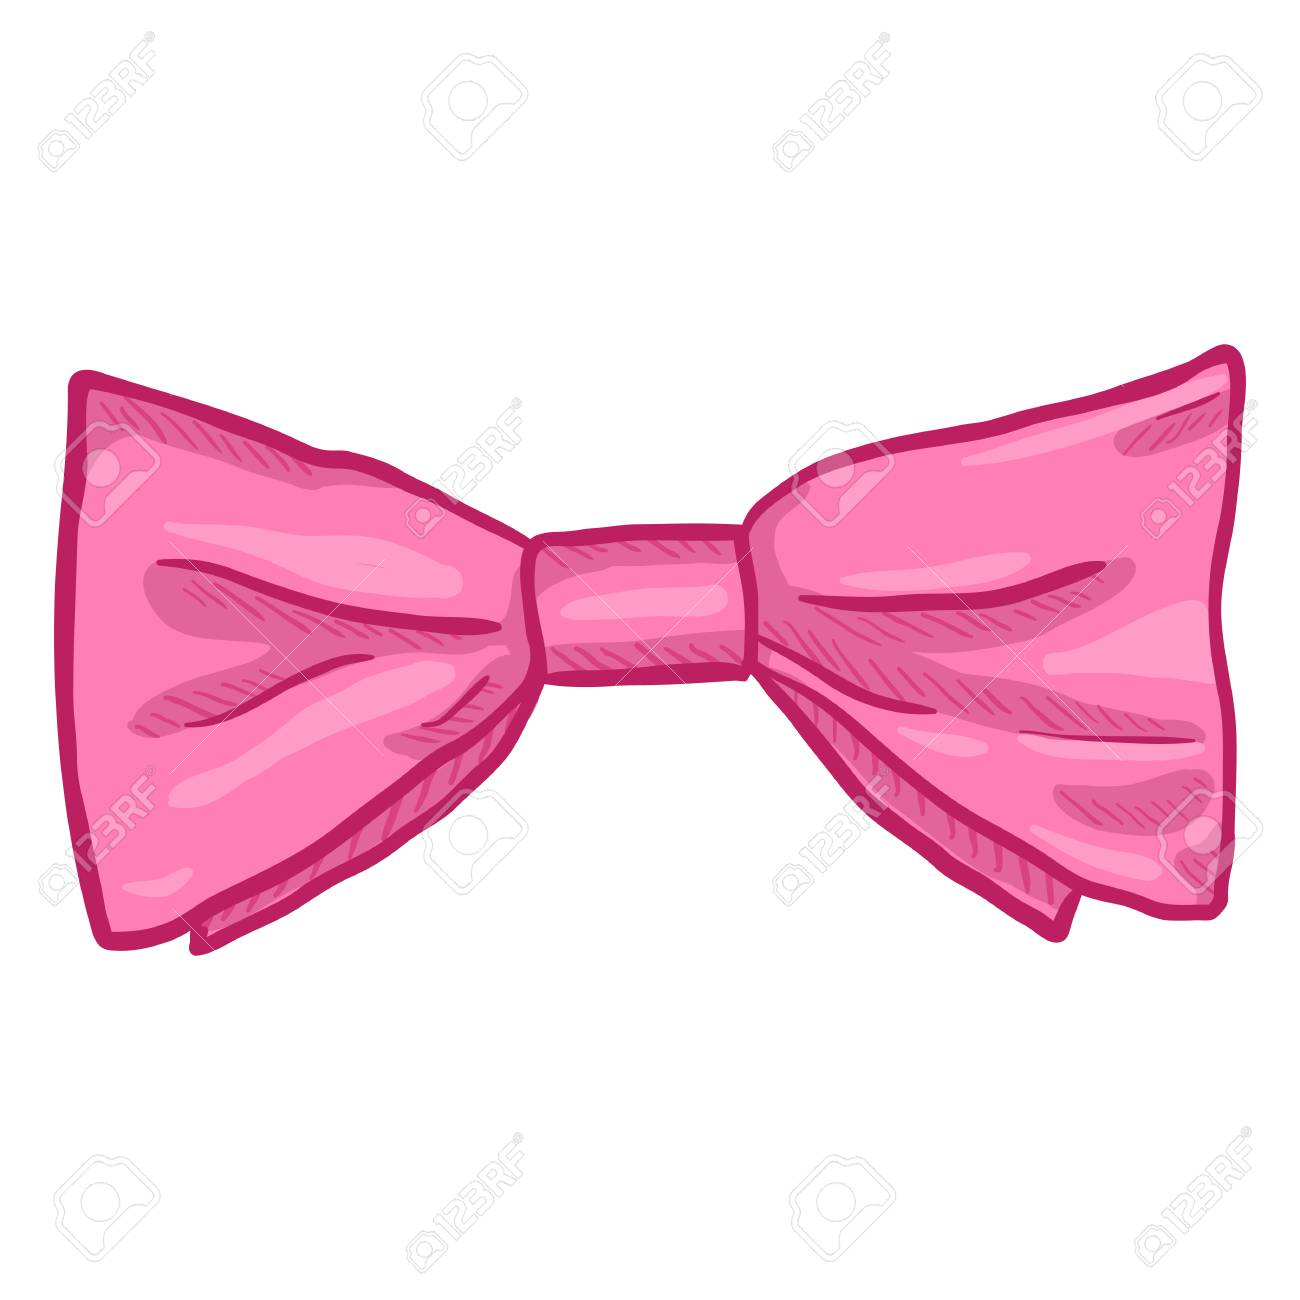 Vector Cartoon Standard Pink Bow Tie Vintage Fashion Accessory Royalty Free Cliparts Vectors And Stock Illustration Image 95252652 Free for commercial use no attribution required high quality images. vector cartoon standard pink bow tie vintage fashion accessory